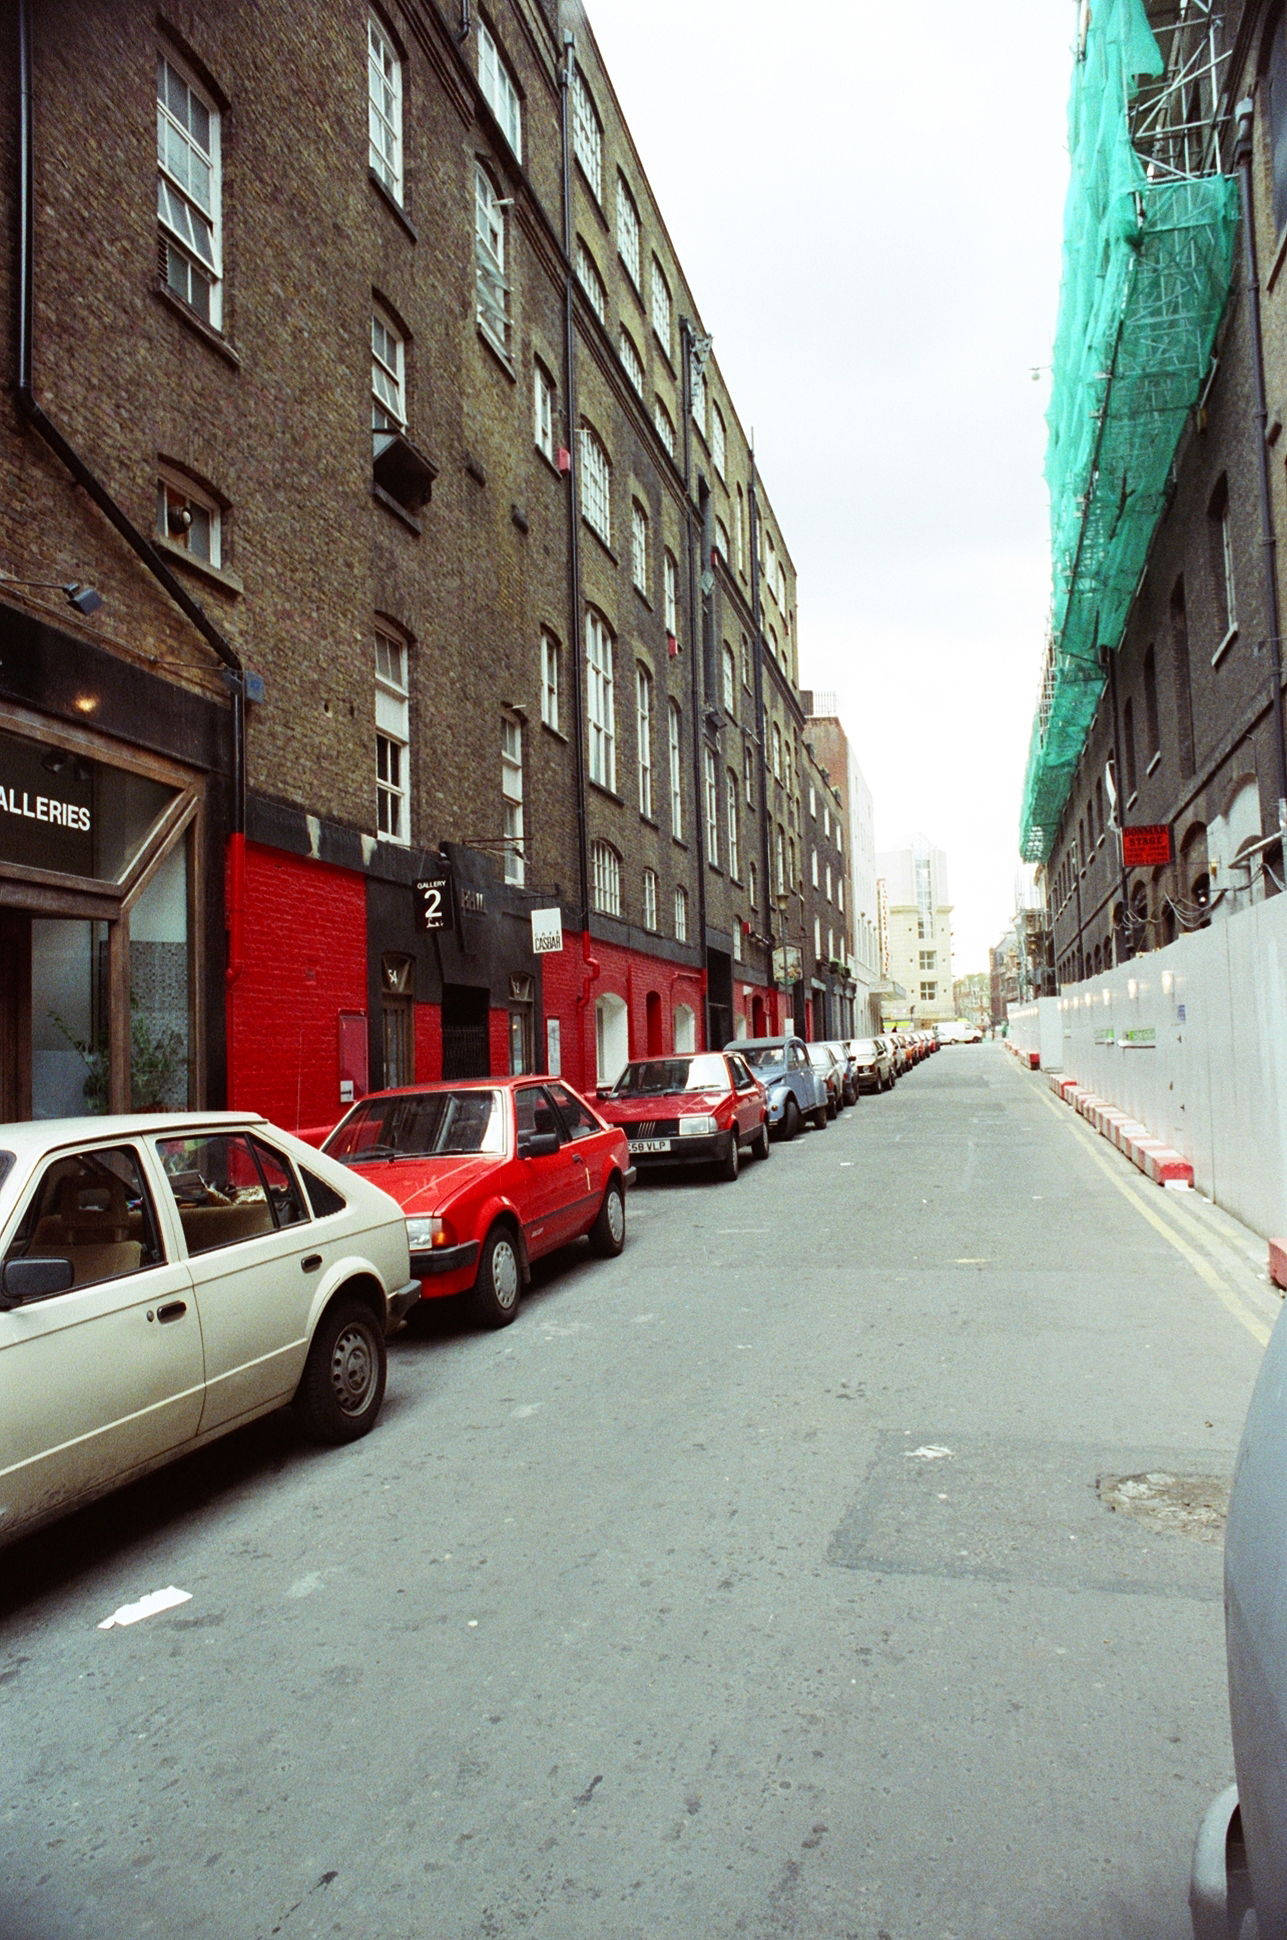 Earlham Street east, before street improvement works.